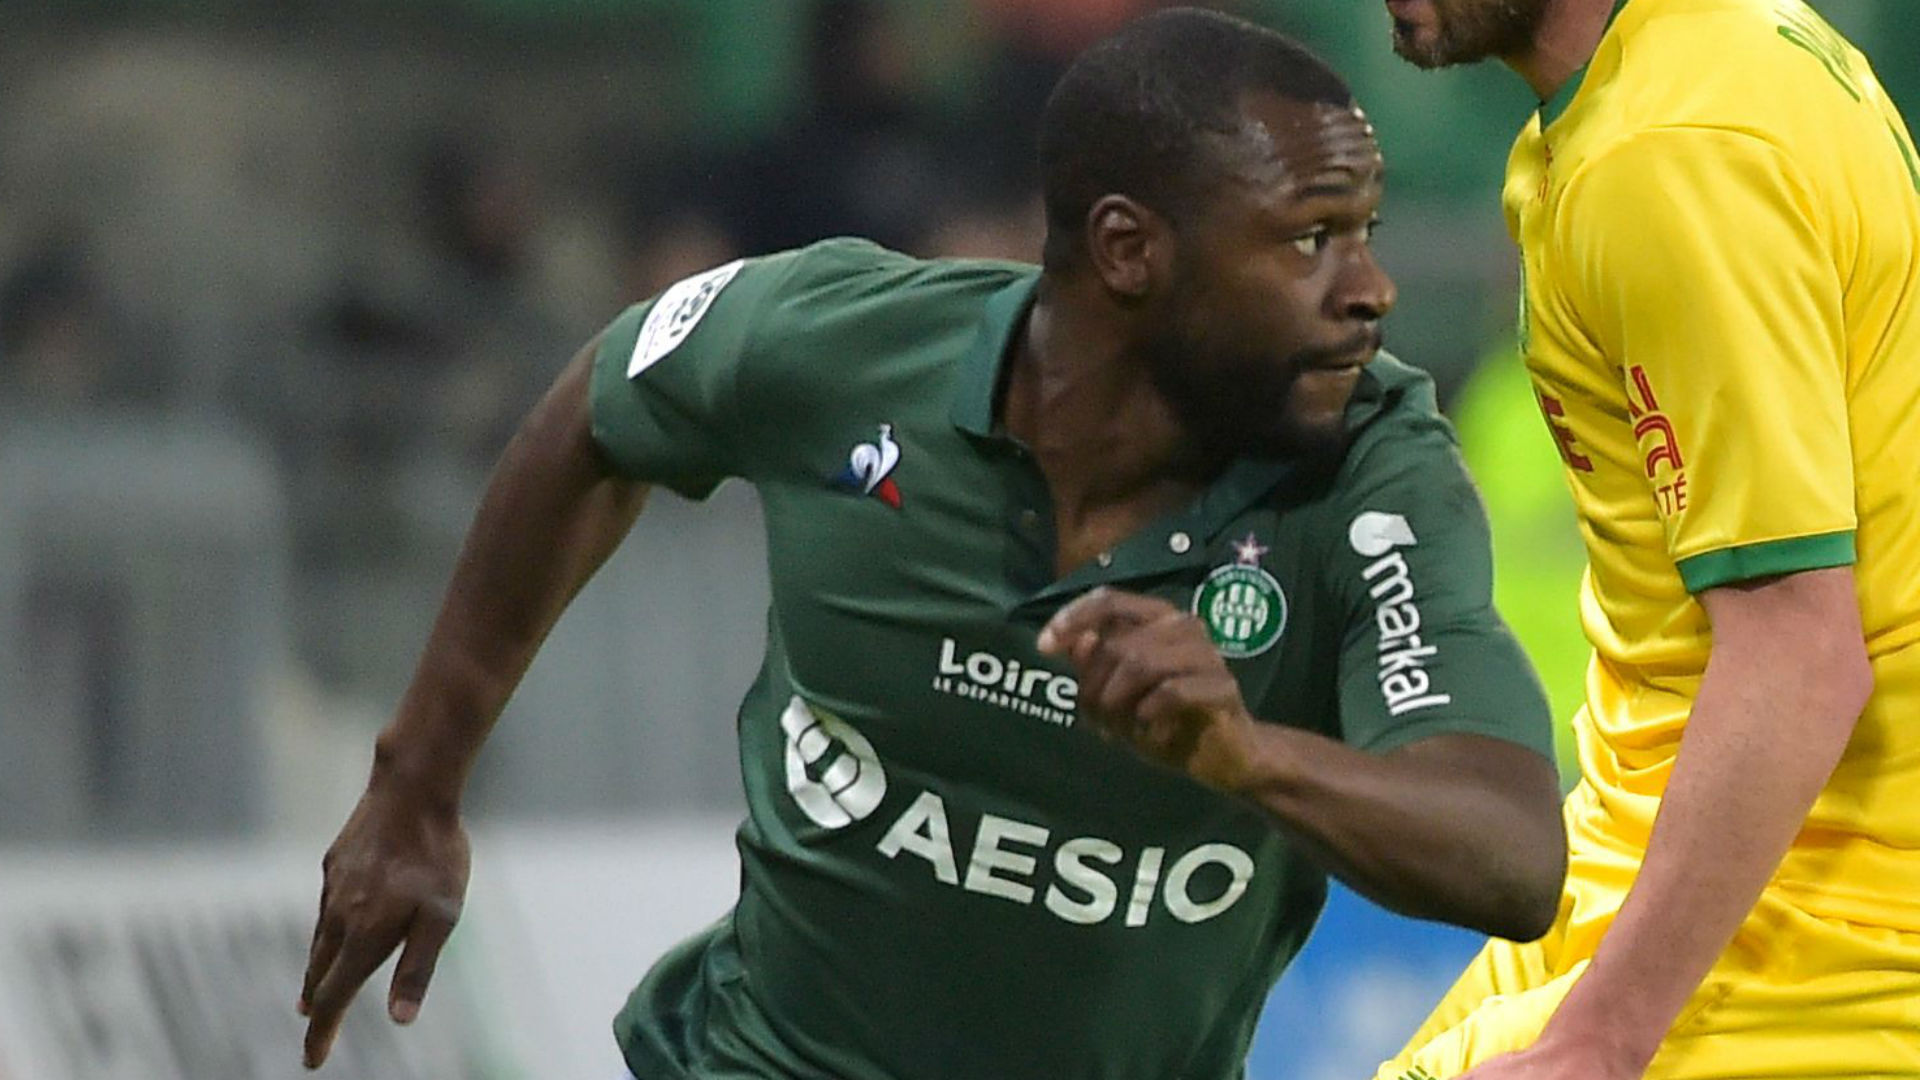 Makhtar Gueye: Senegalese and Saint-Etienne striker set to join Belgian side Oostende - report